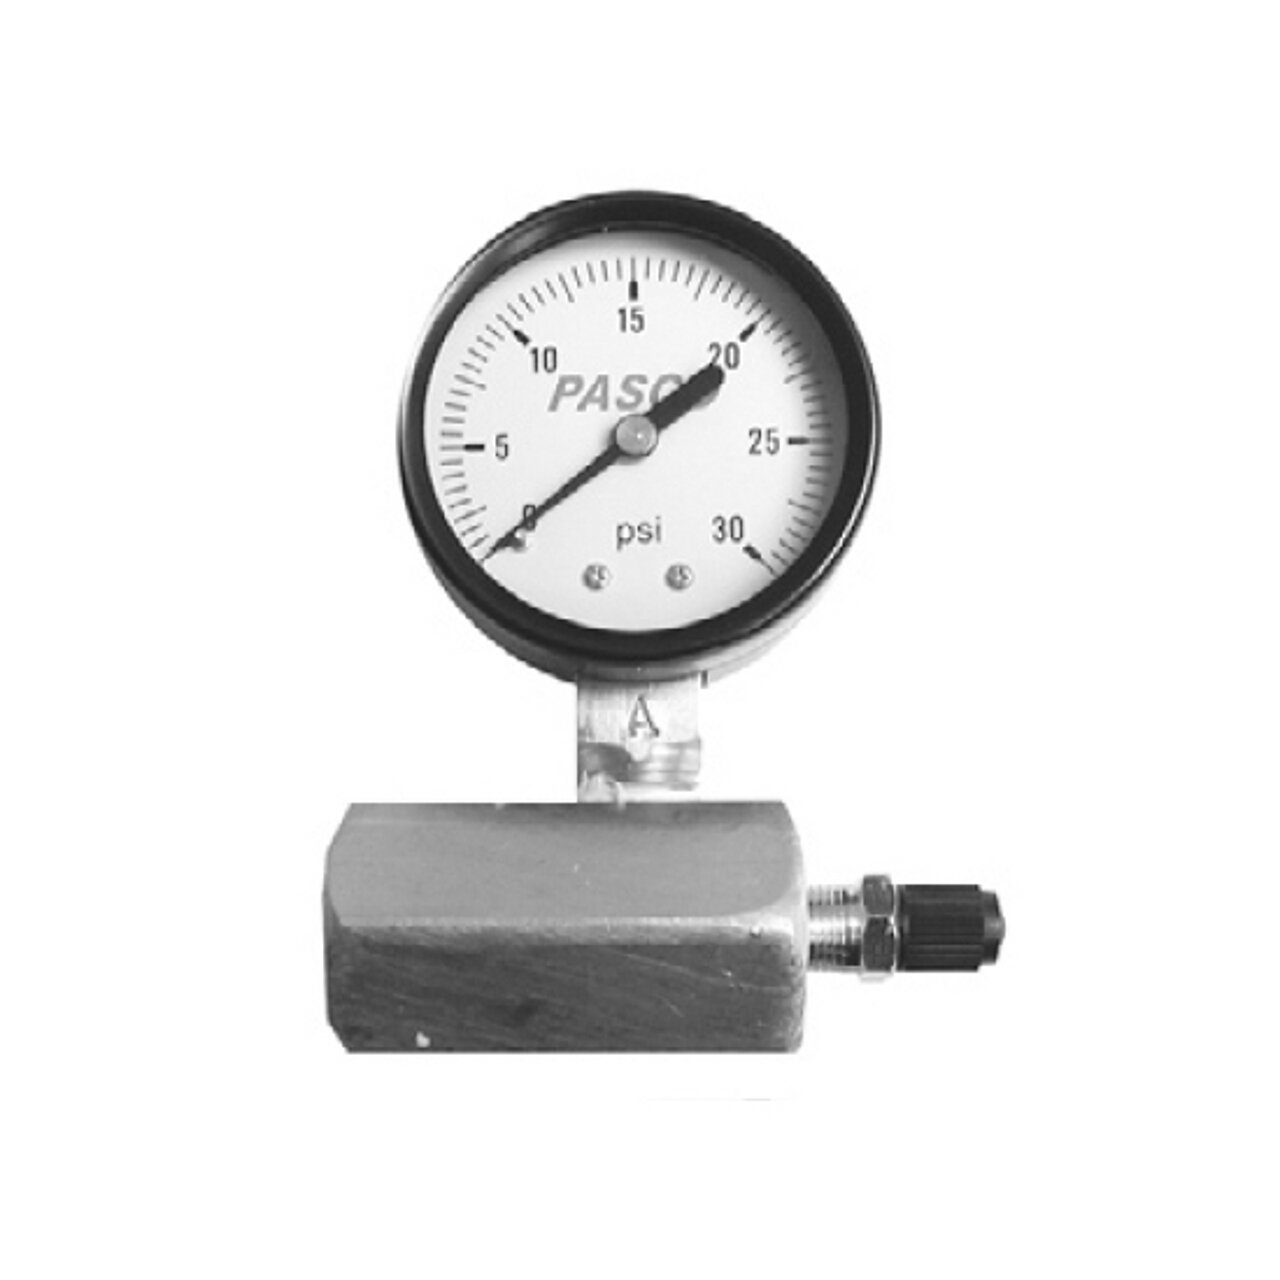 Pasco 1420 60-Pound Gas Test Gauge Assembly by Pasco